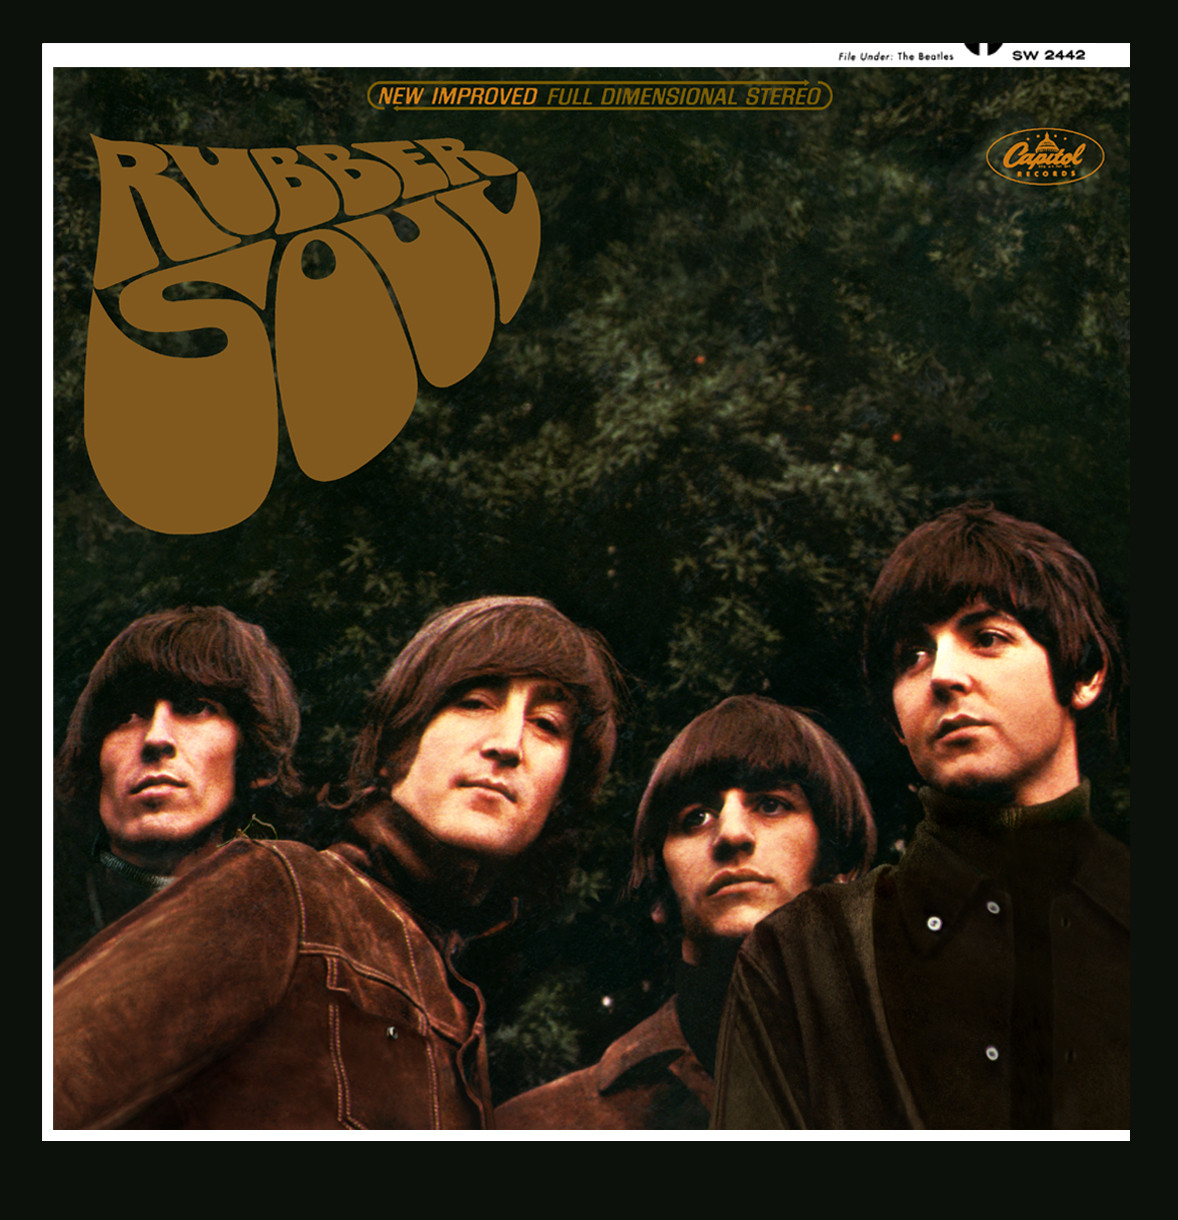 album review of the beatles rubber soul Rubber soul | the beatles to stream in hi-fi, or to download in true cd quality on qobuzcom.